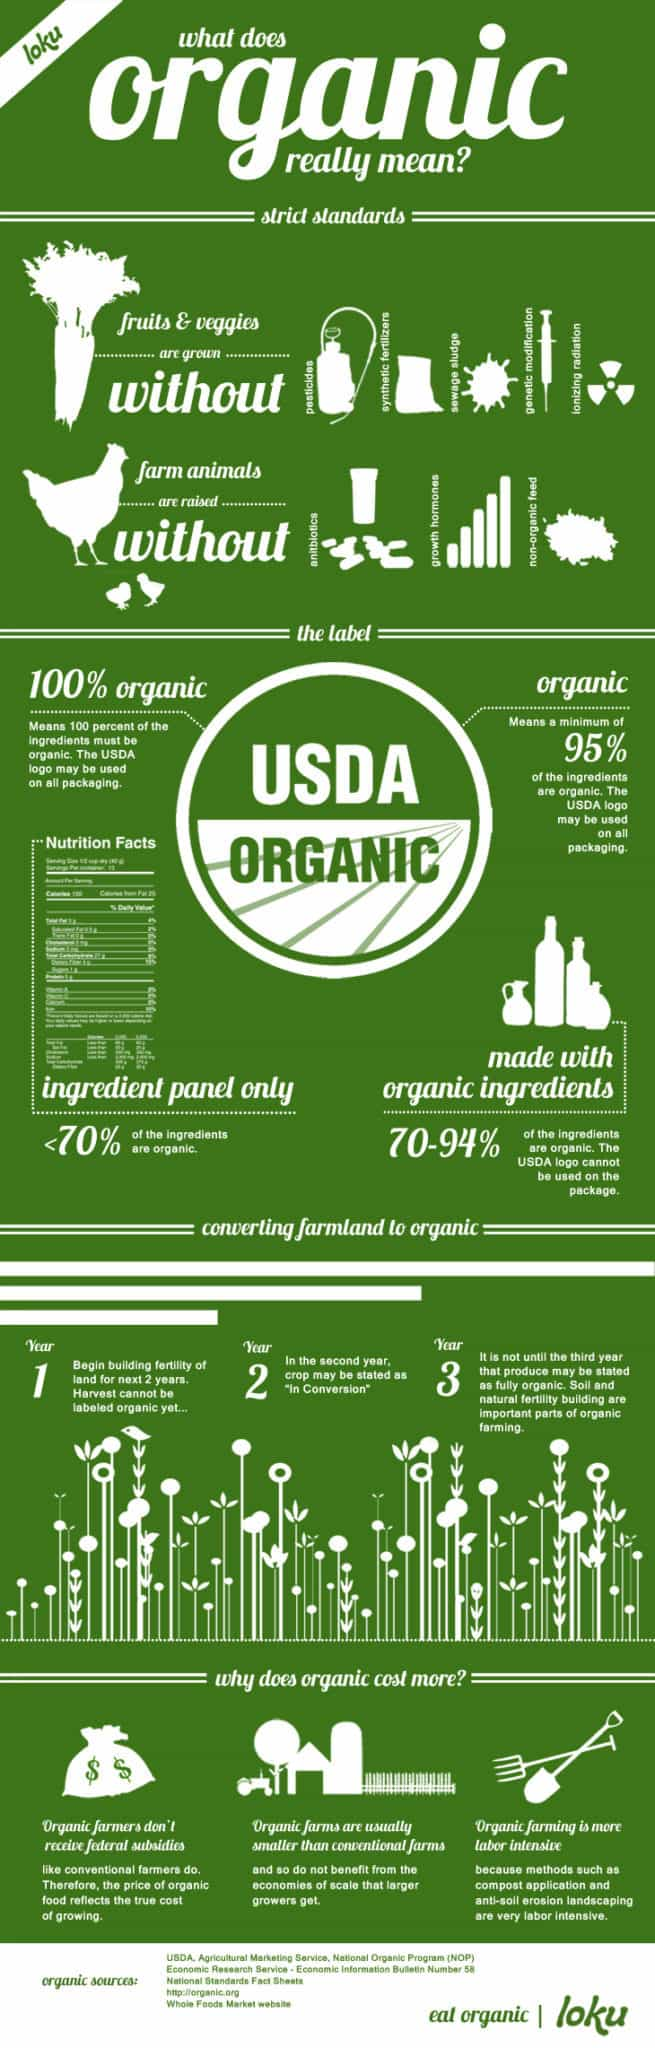 Infographic - What does organic really mean?